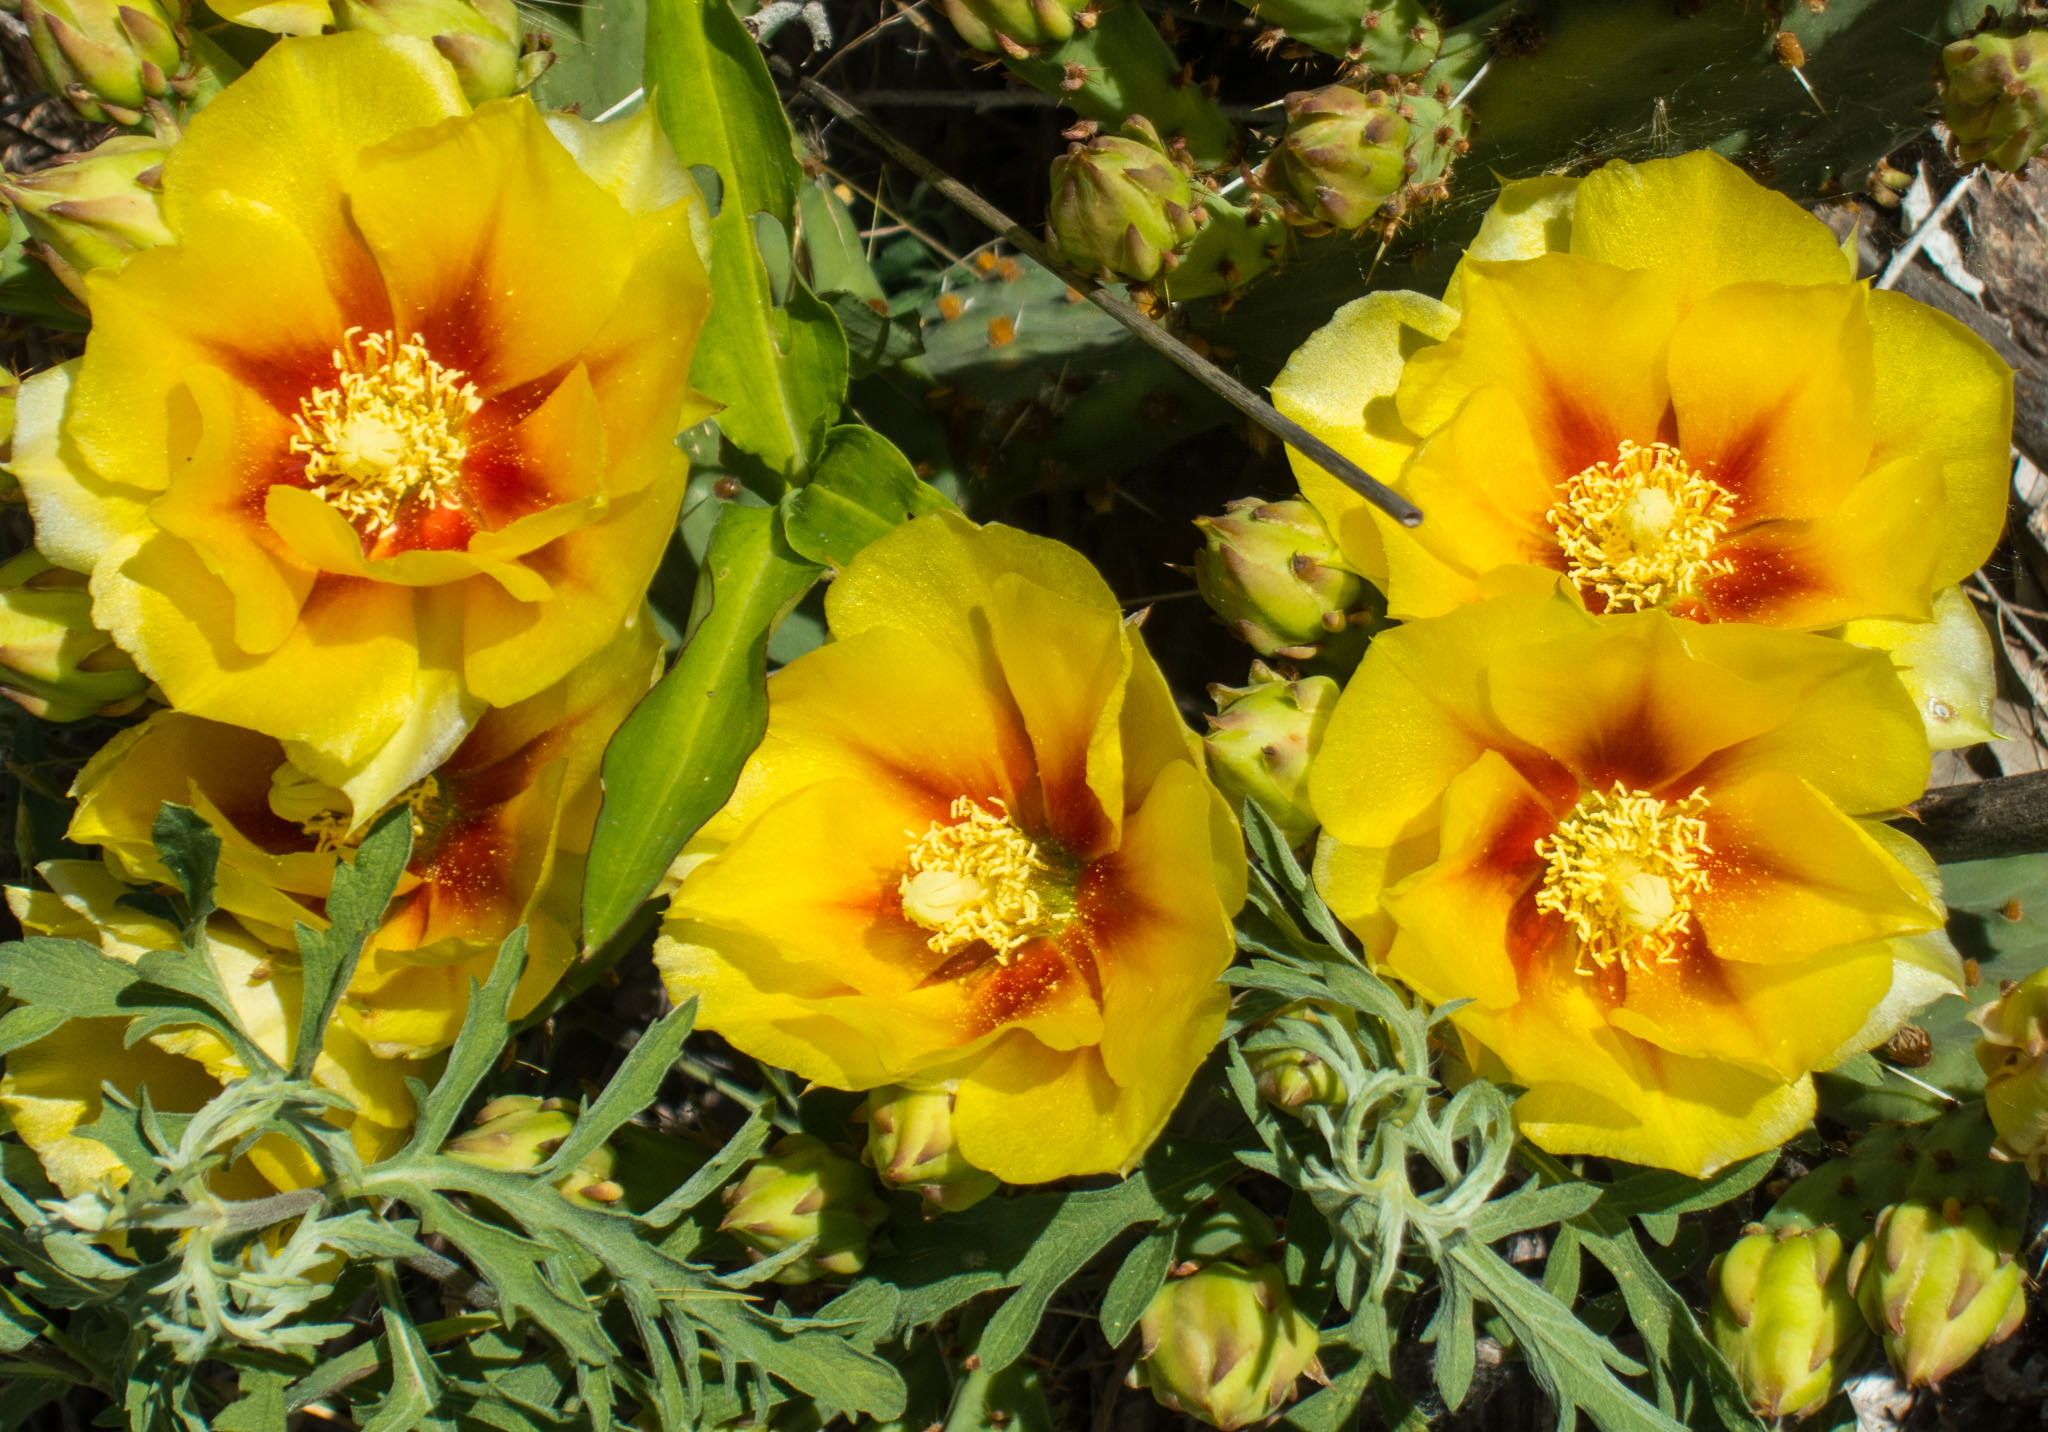 Cactus Flowers on Meadowlark Trail